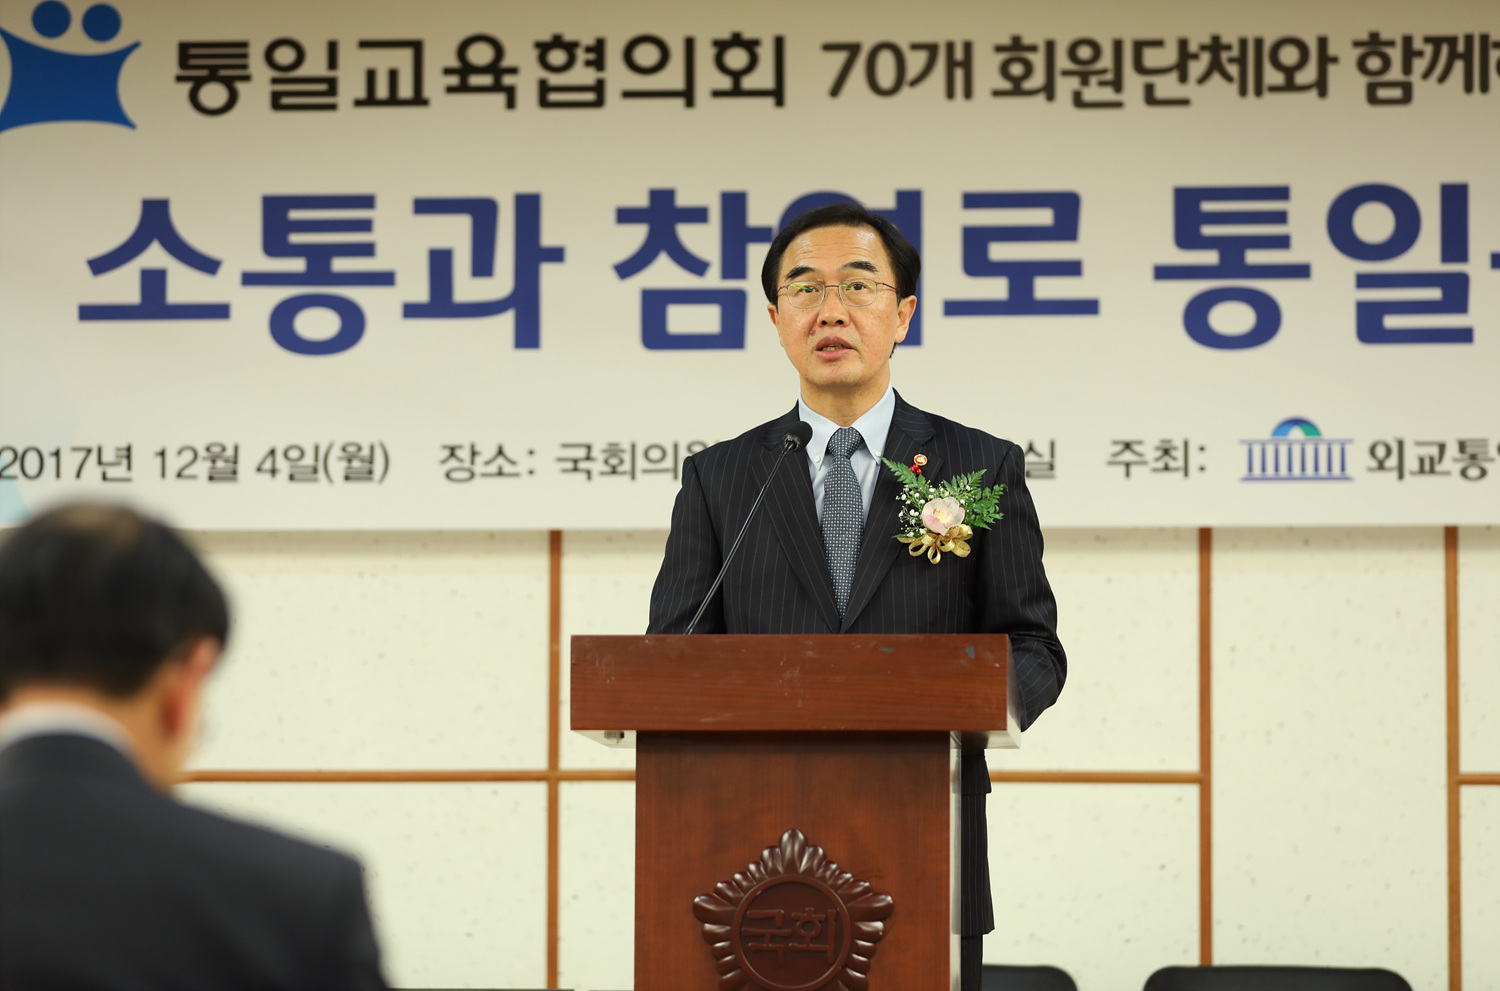 Unification Minister Cho delivers congratulatory message at the 2017 Unification Education Forum hosted by the Council for Unification Education